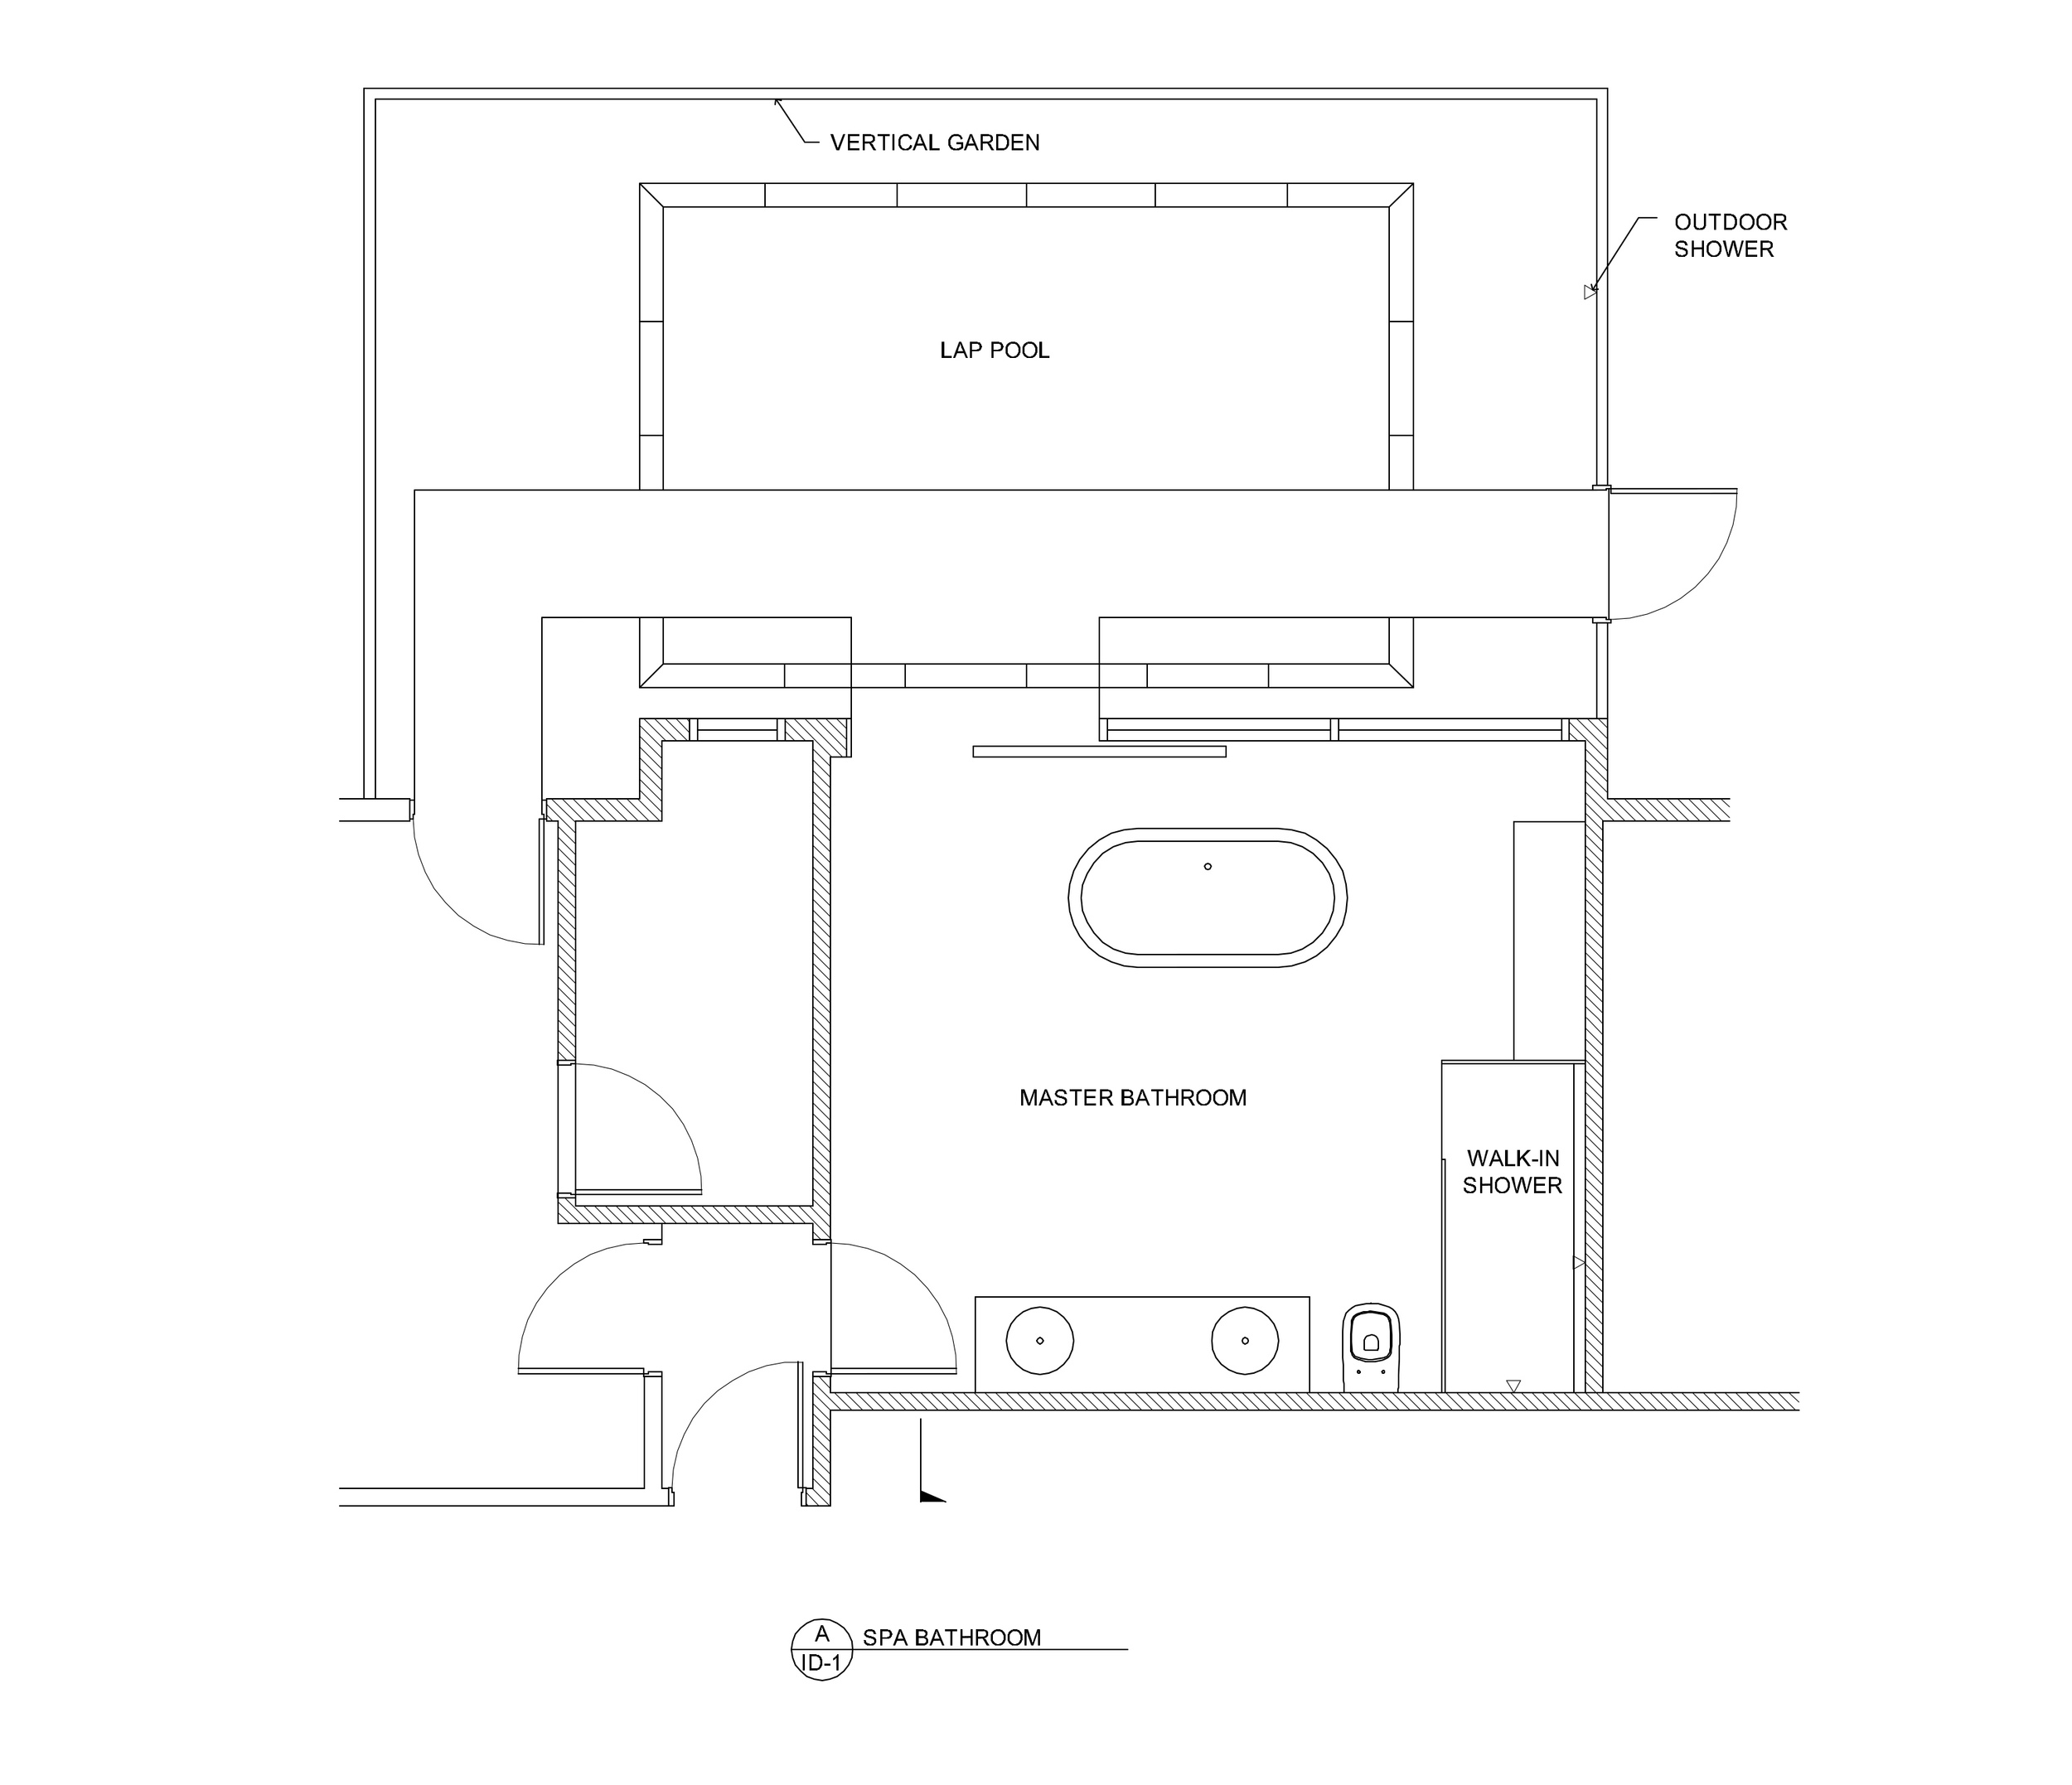 CAD plans of interior and exterior space.